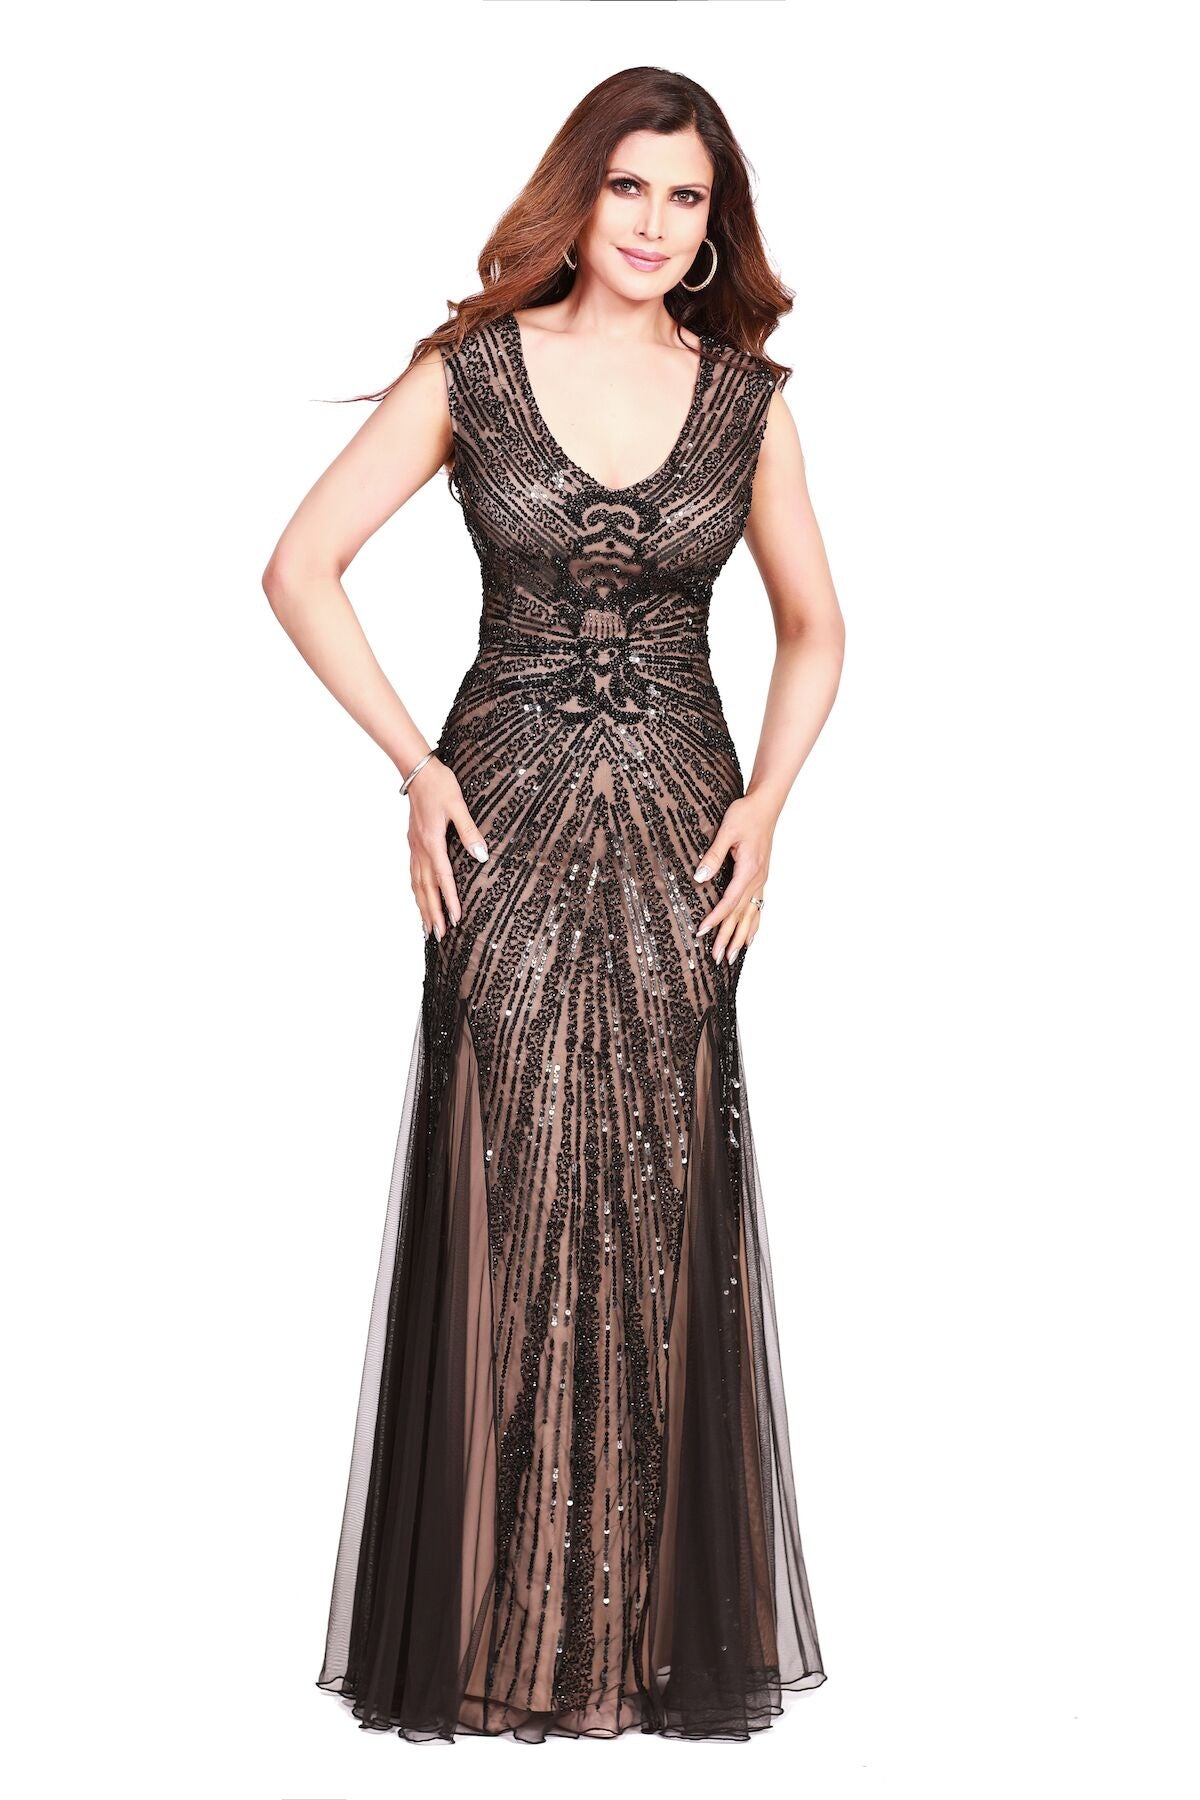 V-Neck A-Line embellished Evening Dress Black Nude 3749